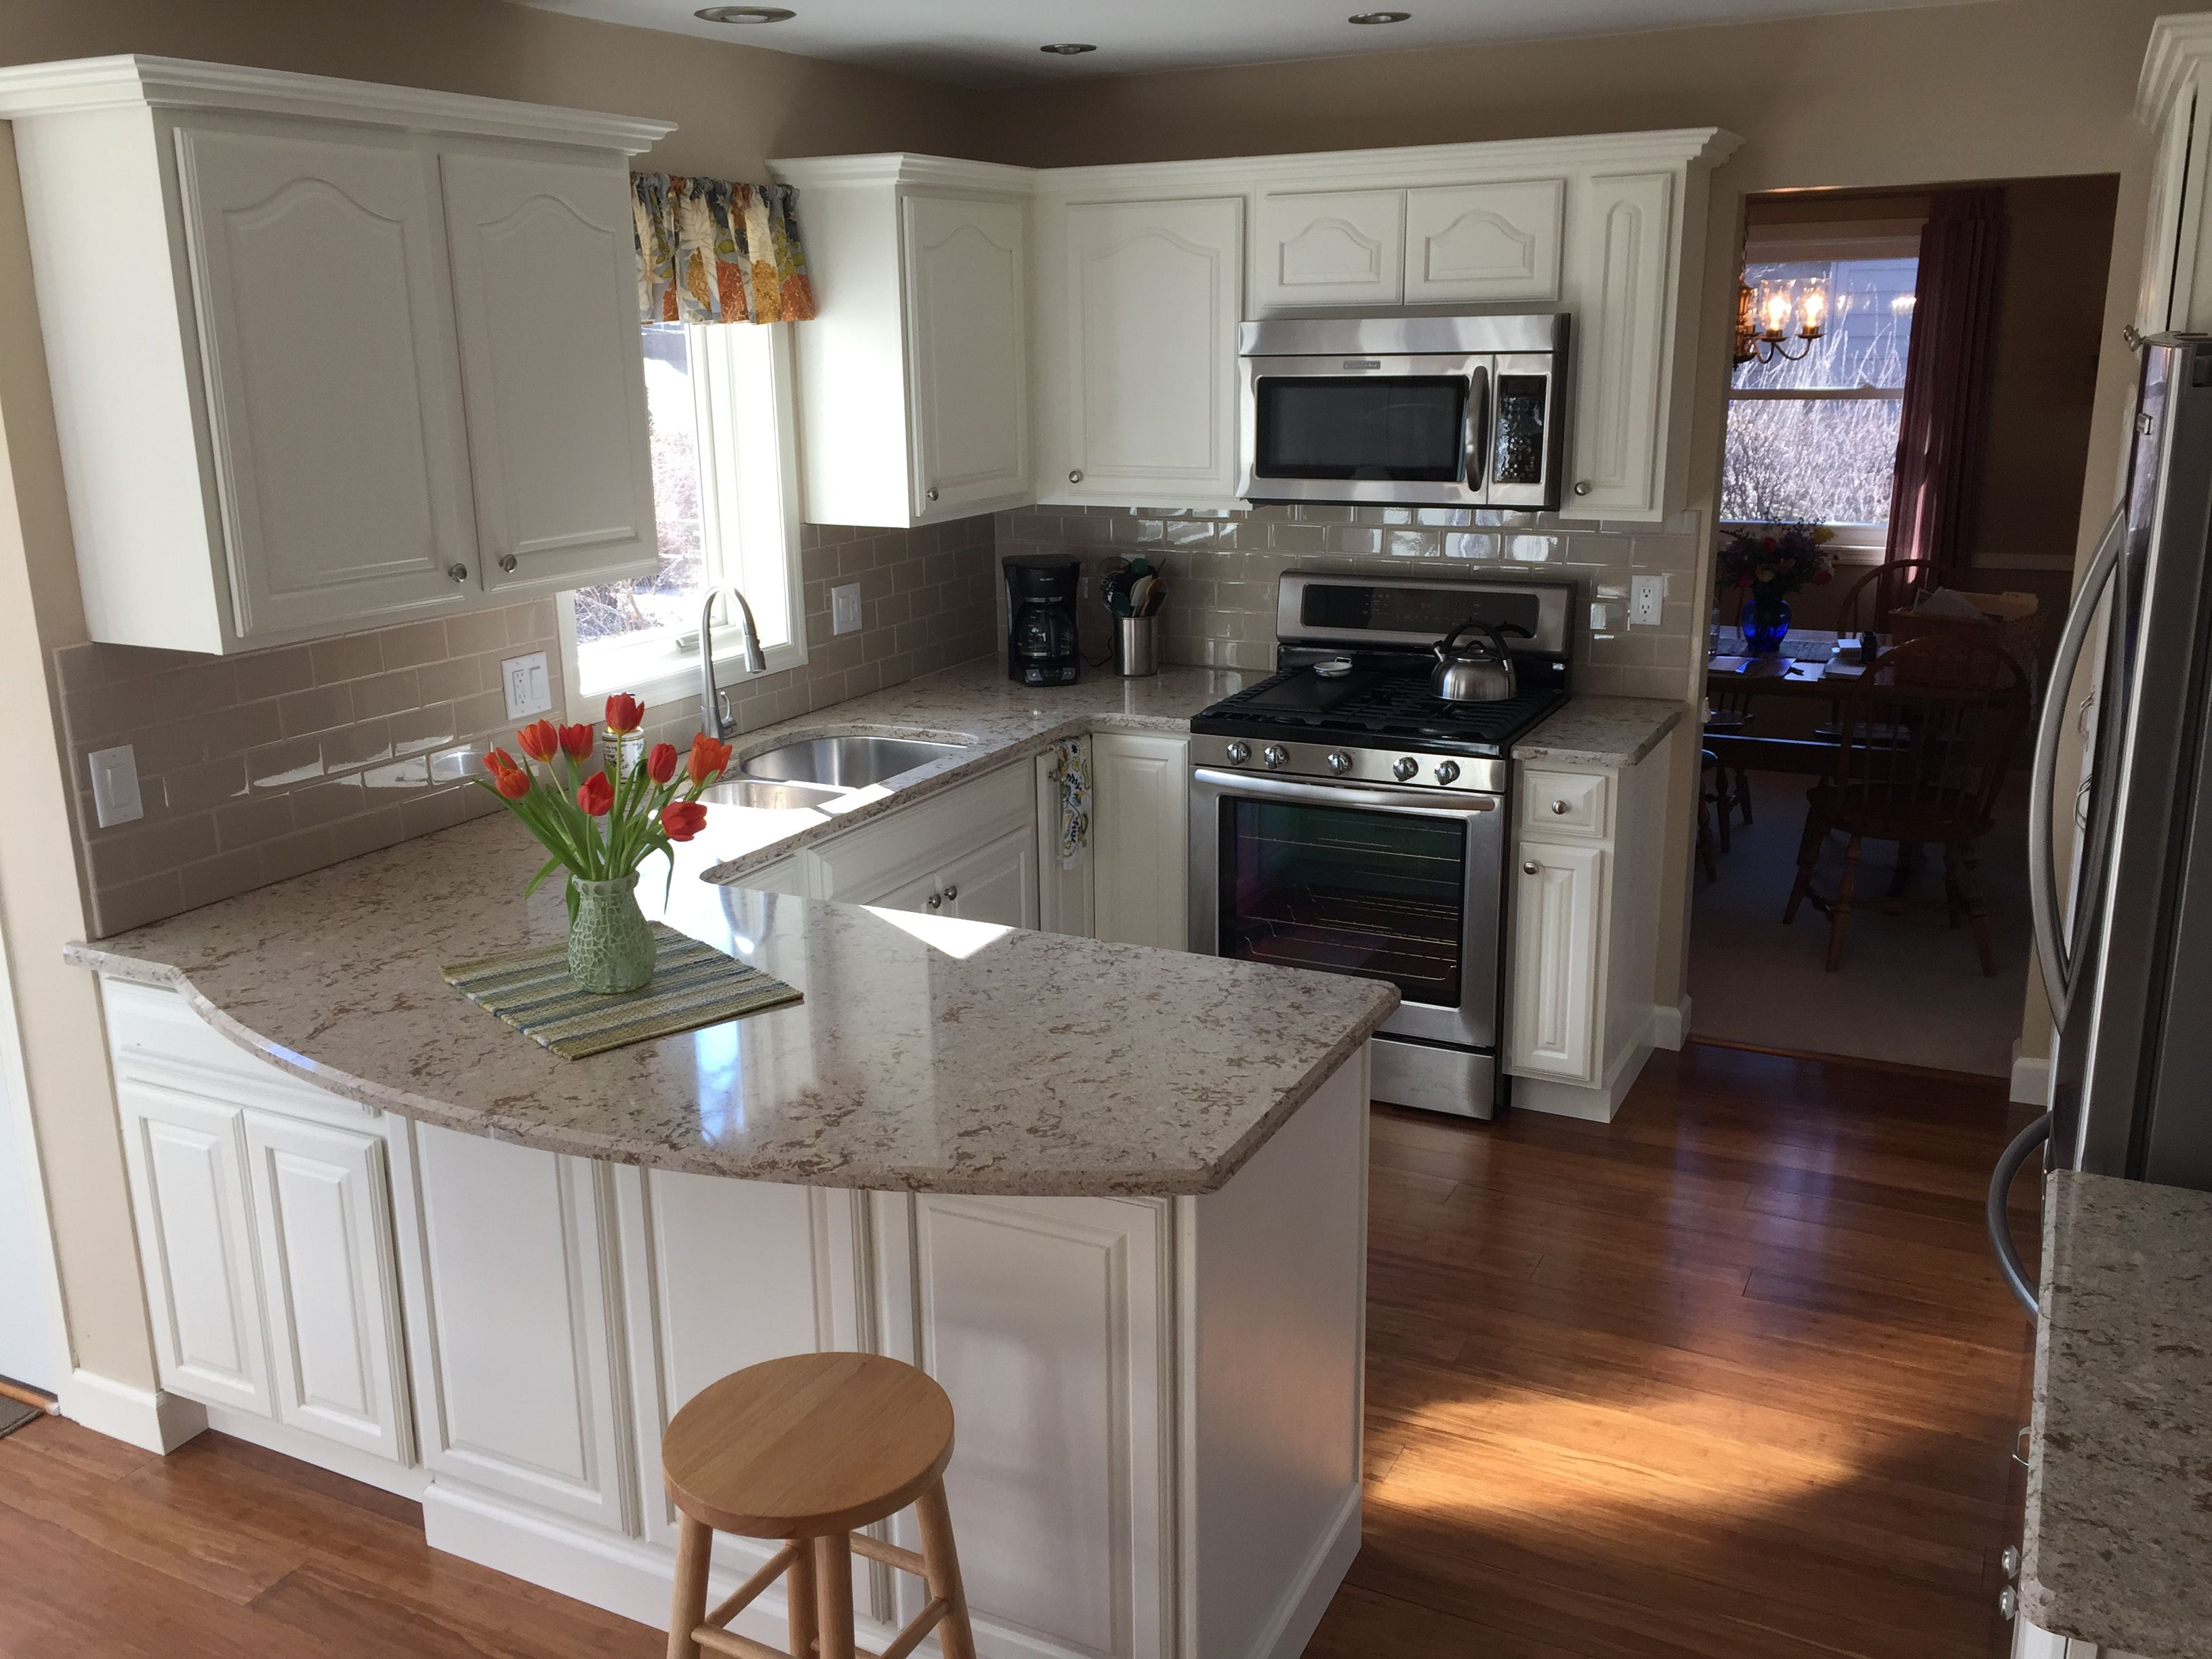 Our kitchen remodel Oak painted white. We used